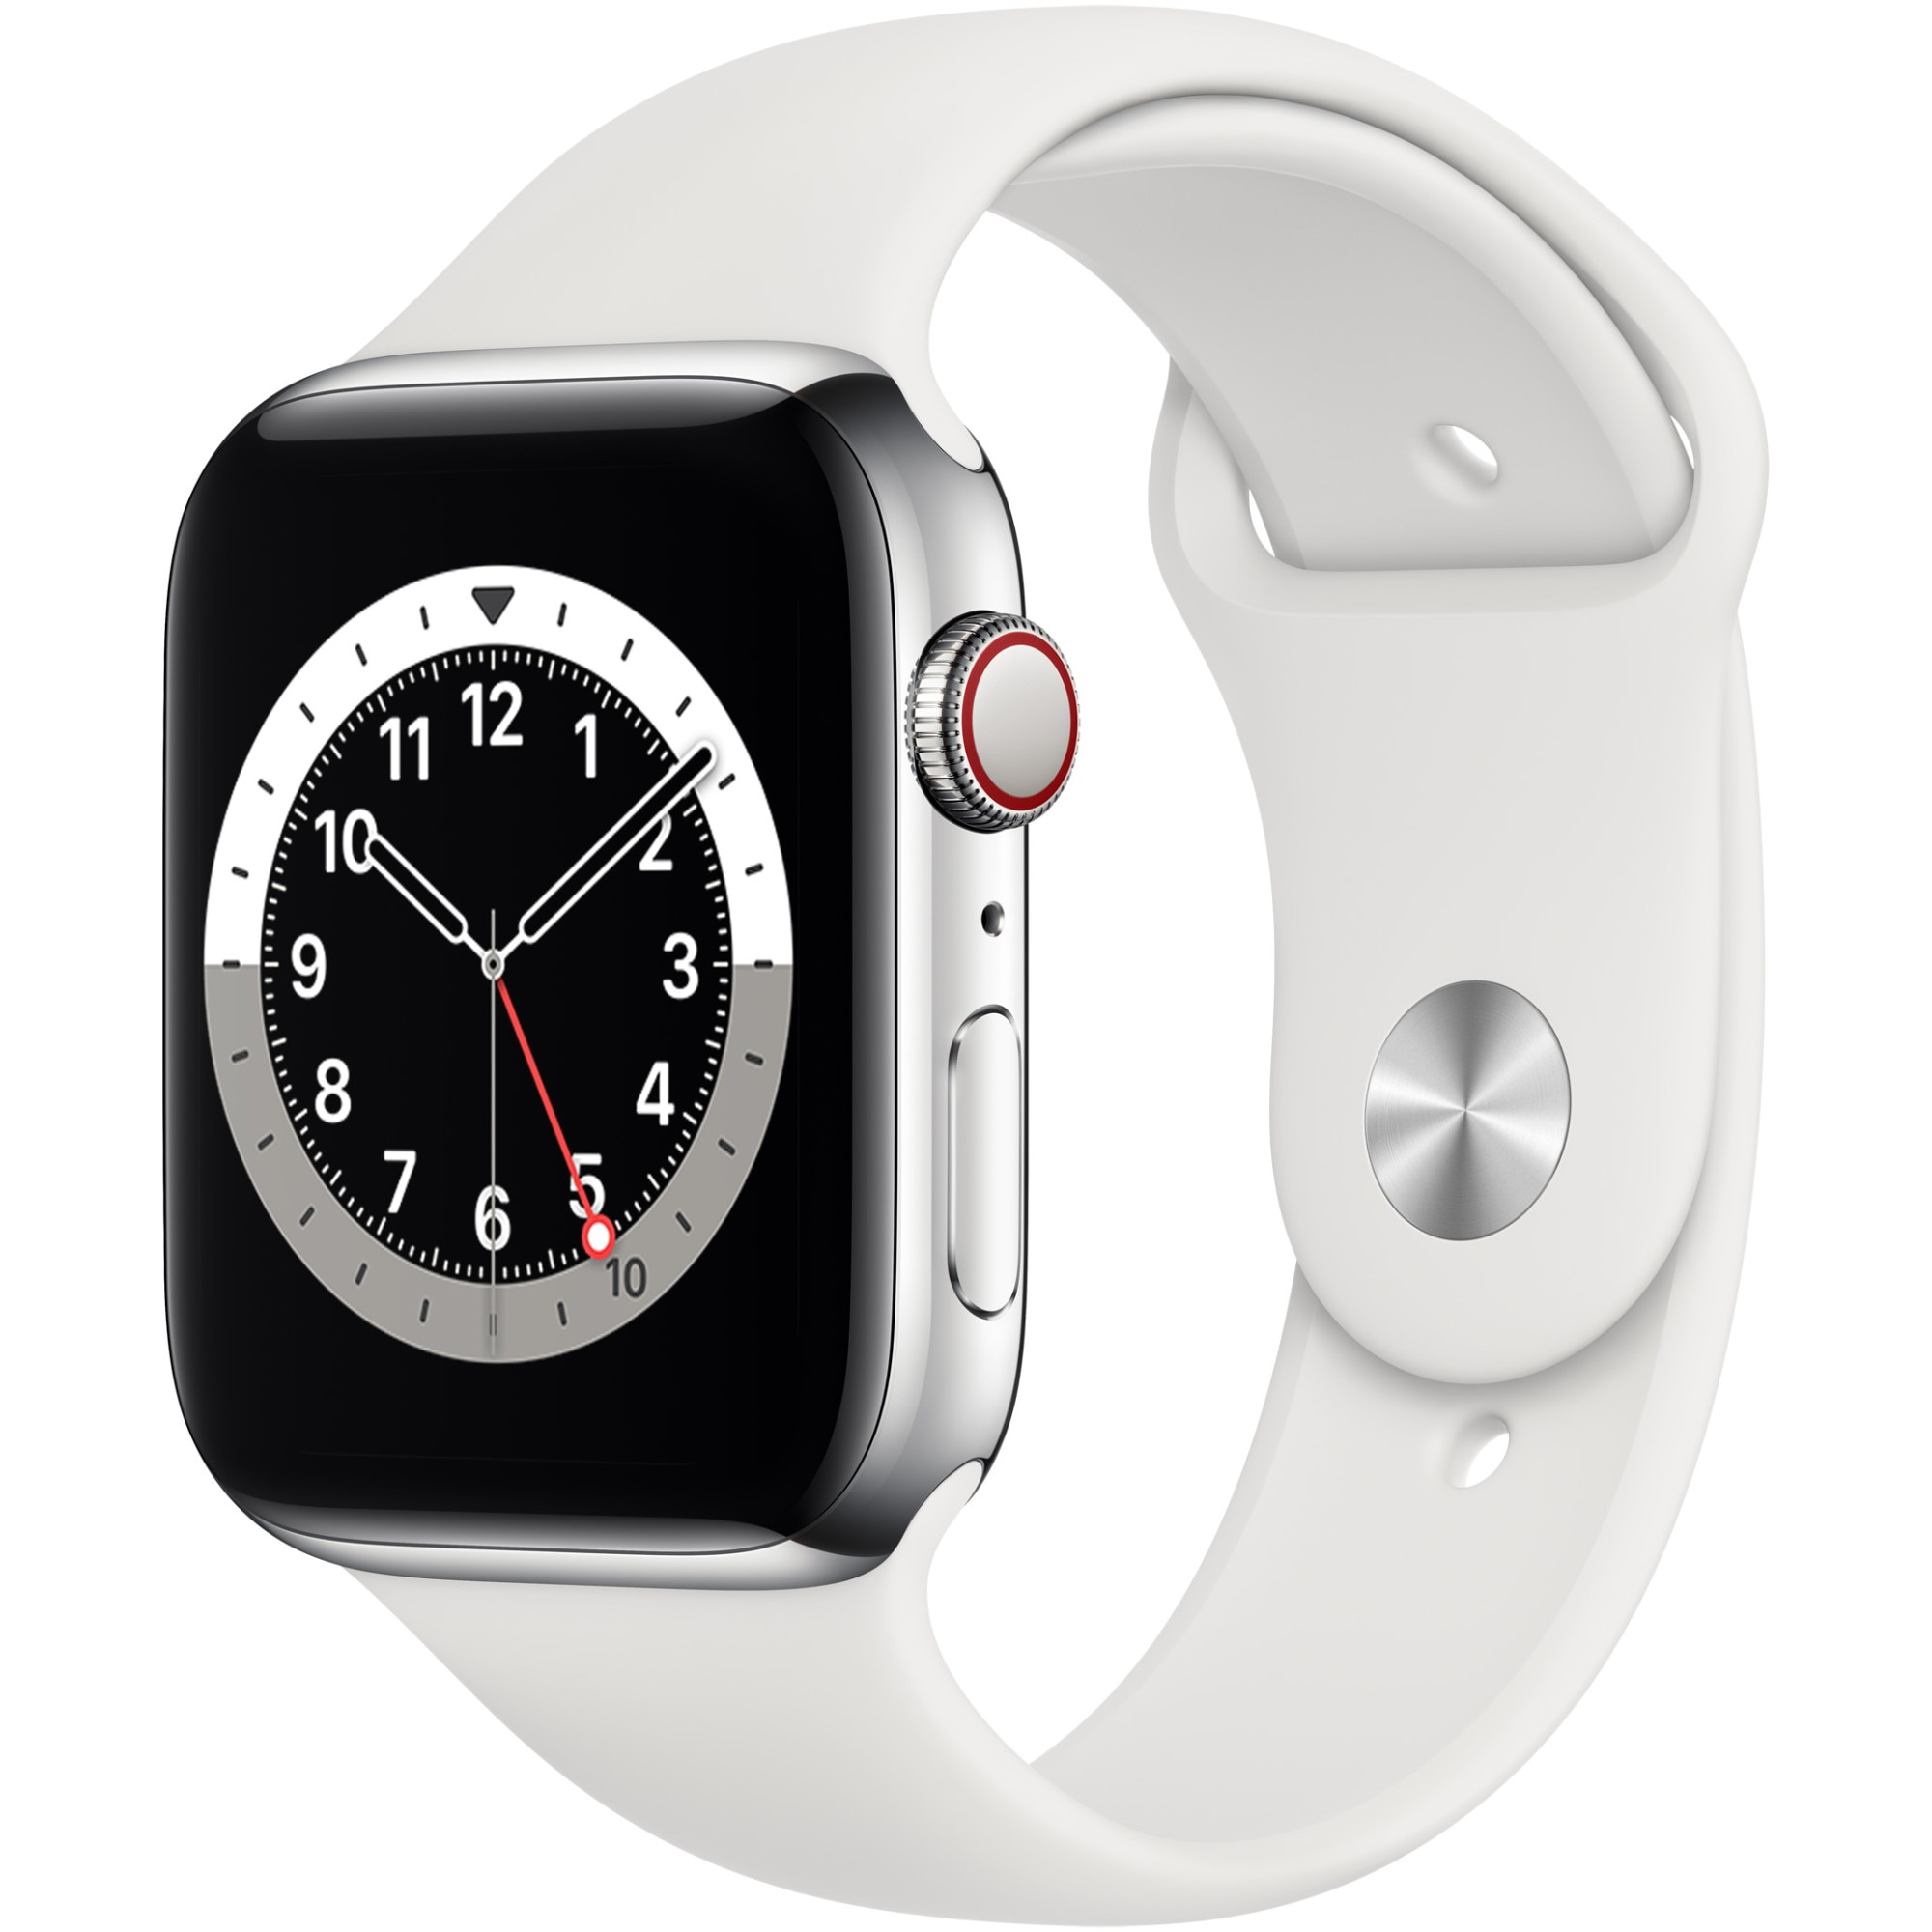 Fotografie Apple Watch 6, GPS, Cellular, Carcasa Silver Stainless Steel 44mm, White Sport Band